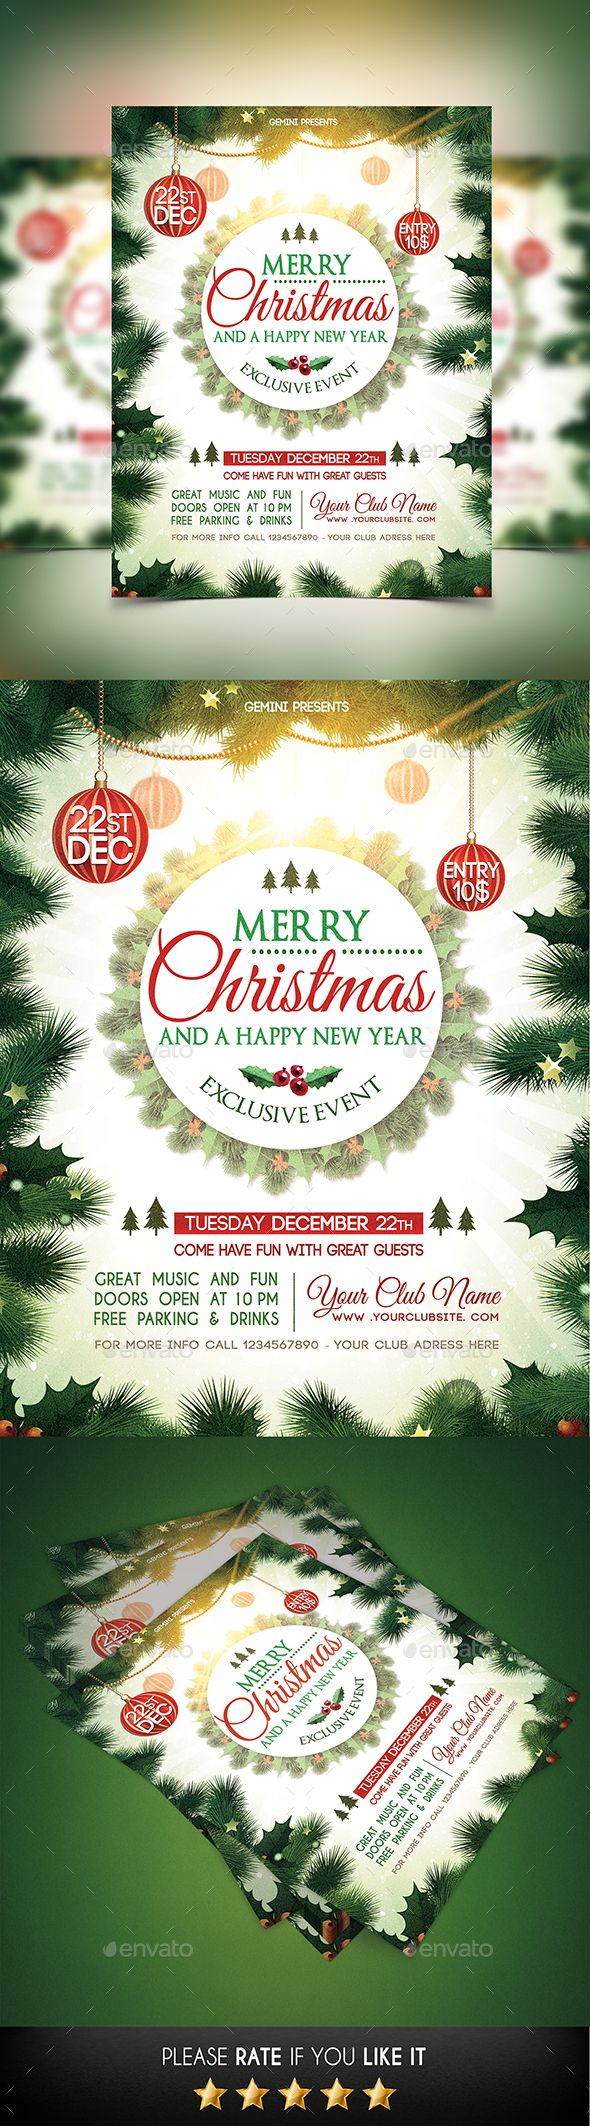 christmas party flyer template psd design xmas download http